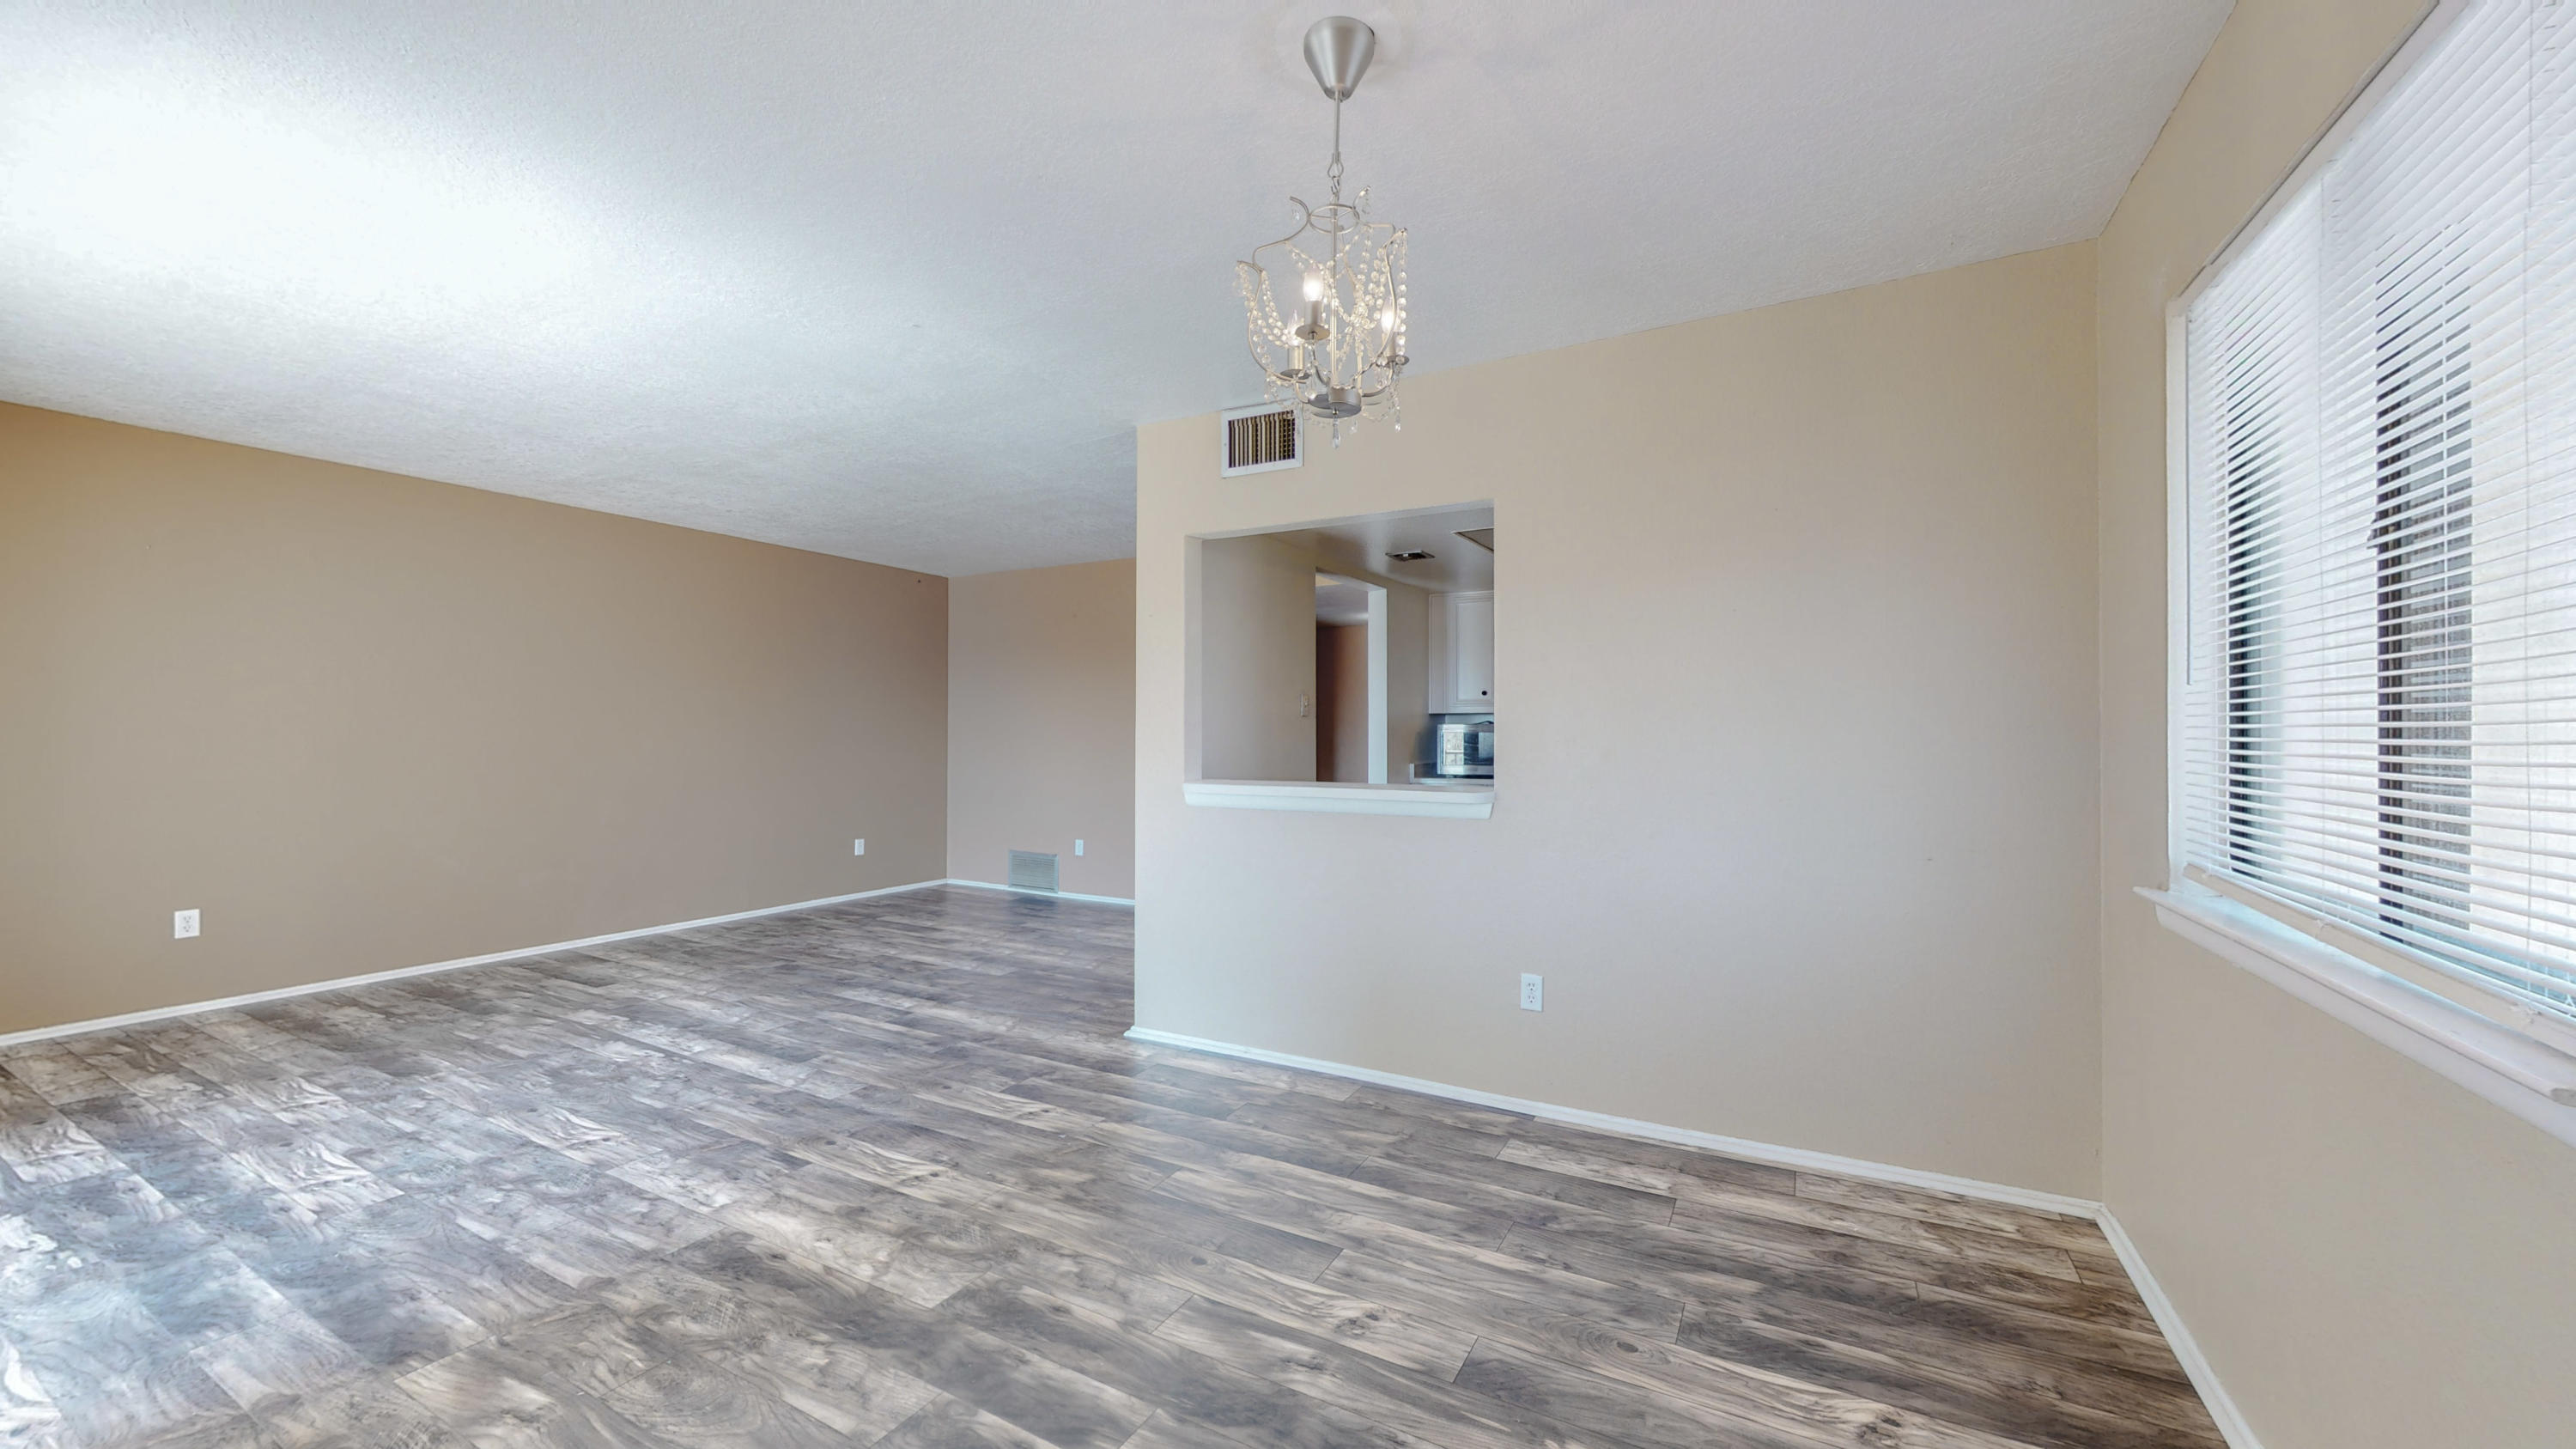 Move in ready condo in the heart of Rio Rancho! This open and bright 1 bedroom unit sits on the second floor in the Fairways condominiums. You will enjoy your refrigerated air and balcony space in the summers as well as lounging by the condo pool. This unit has updated flooring throughout, and all appliances convey including a newer washer and dryer combo unit.